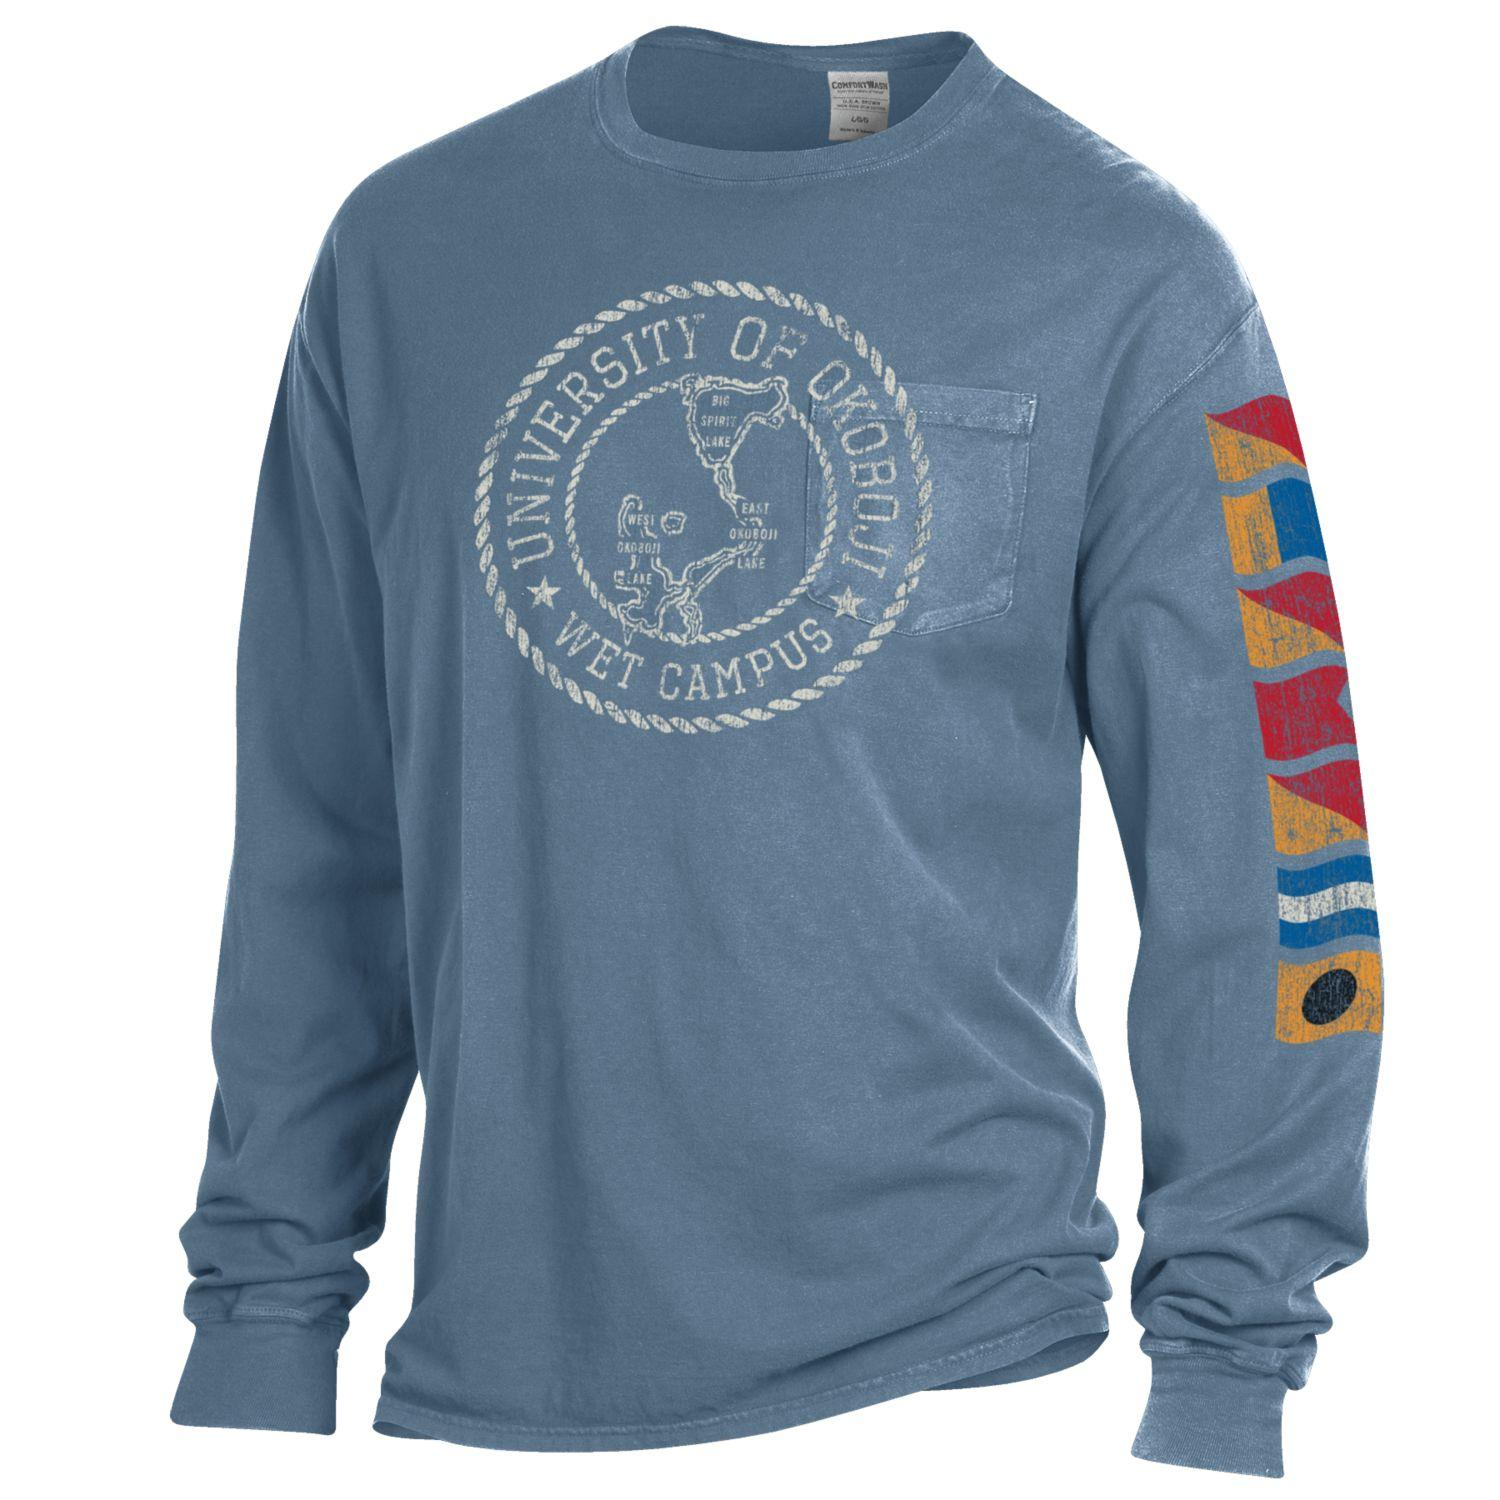 Lake Okoboji Campus Garment Dyed Long Sleeve Pocket Tee - Deep Water Blue